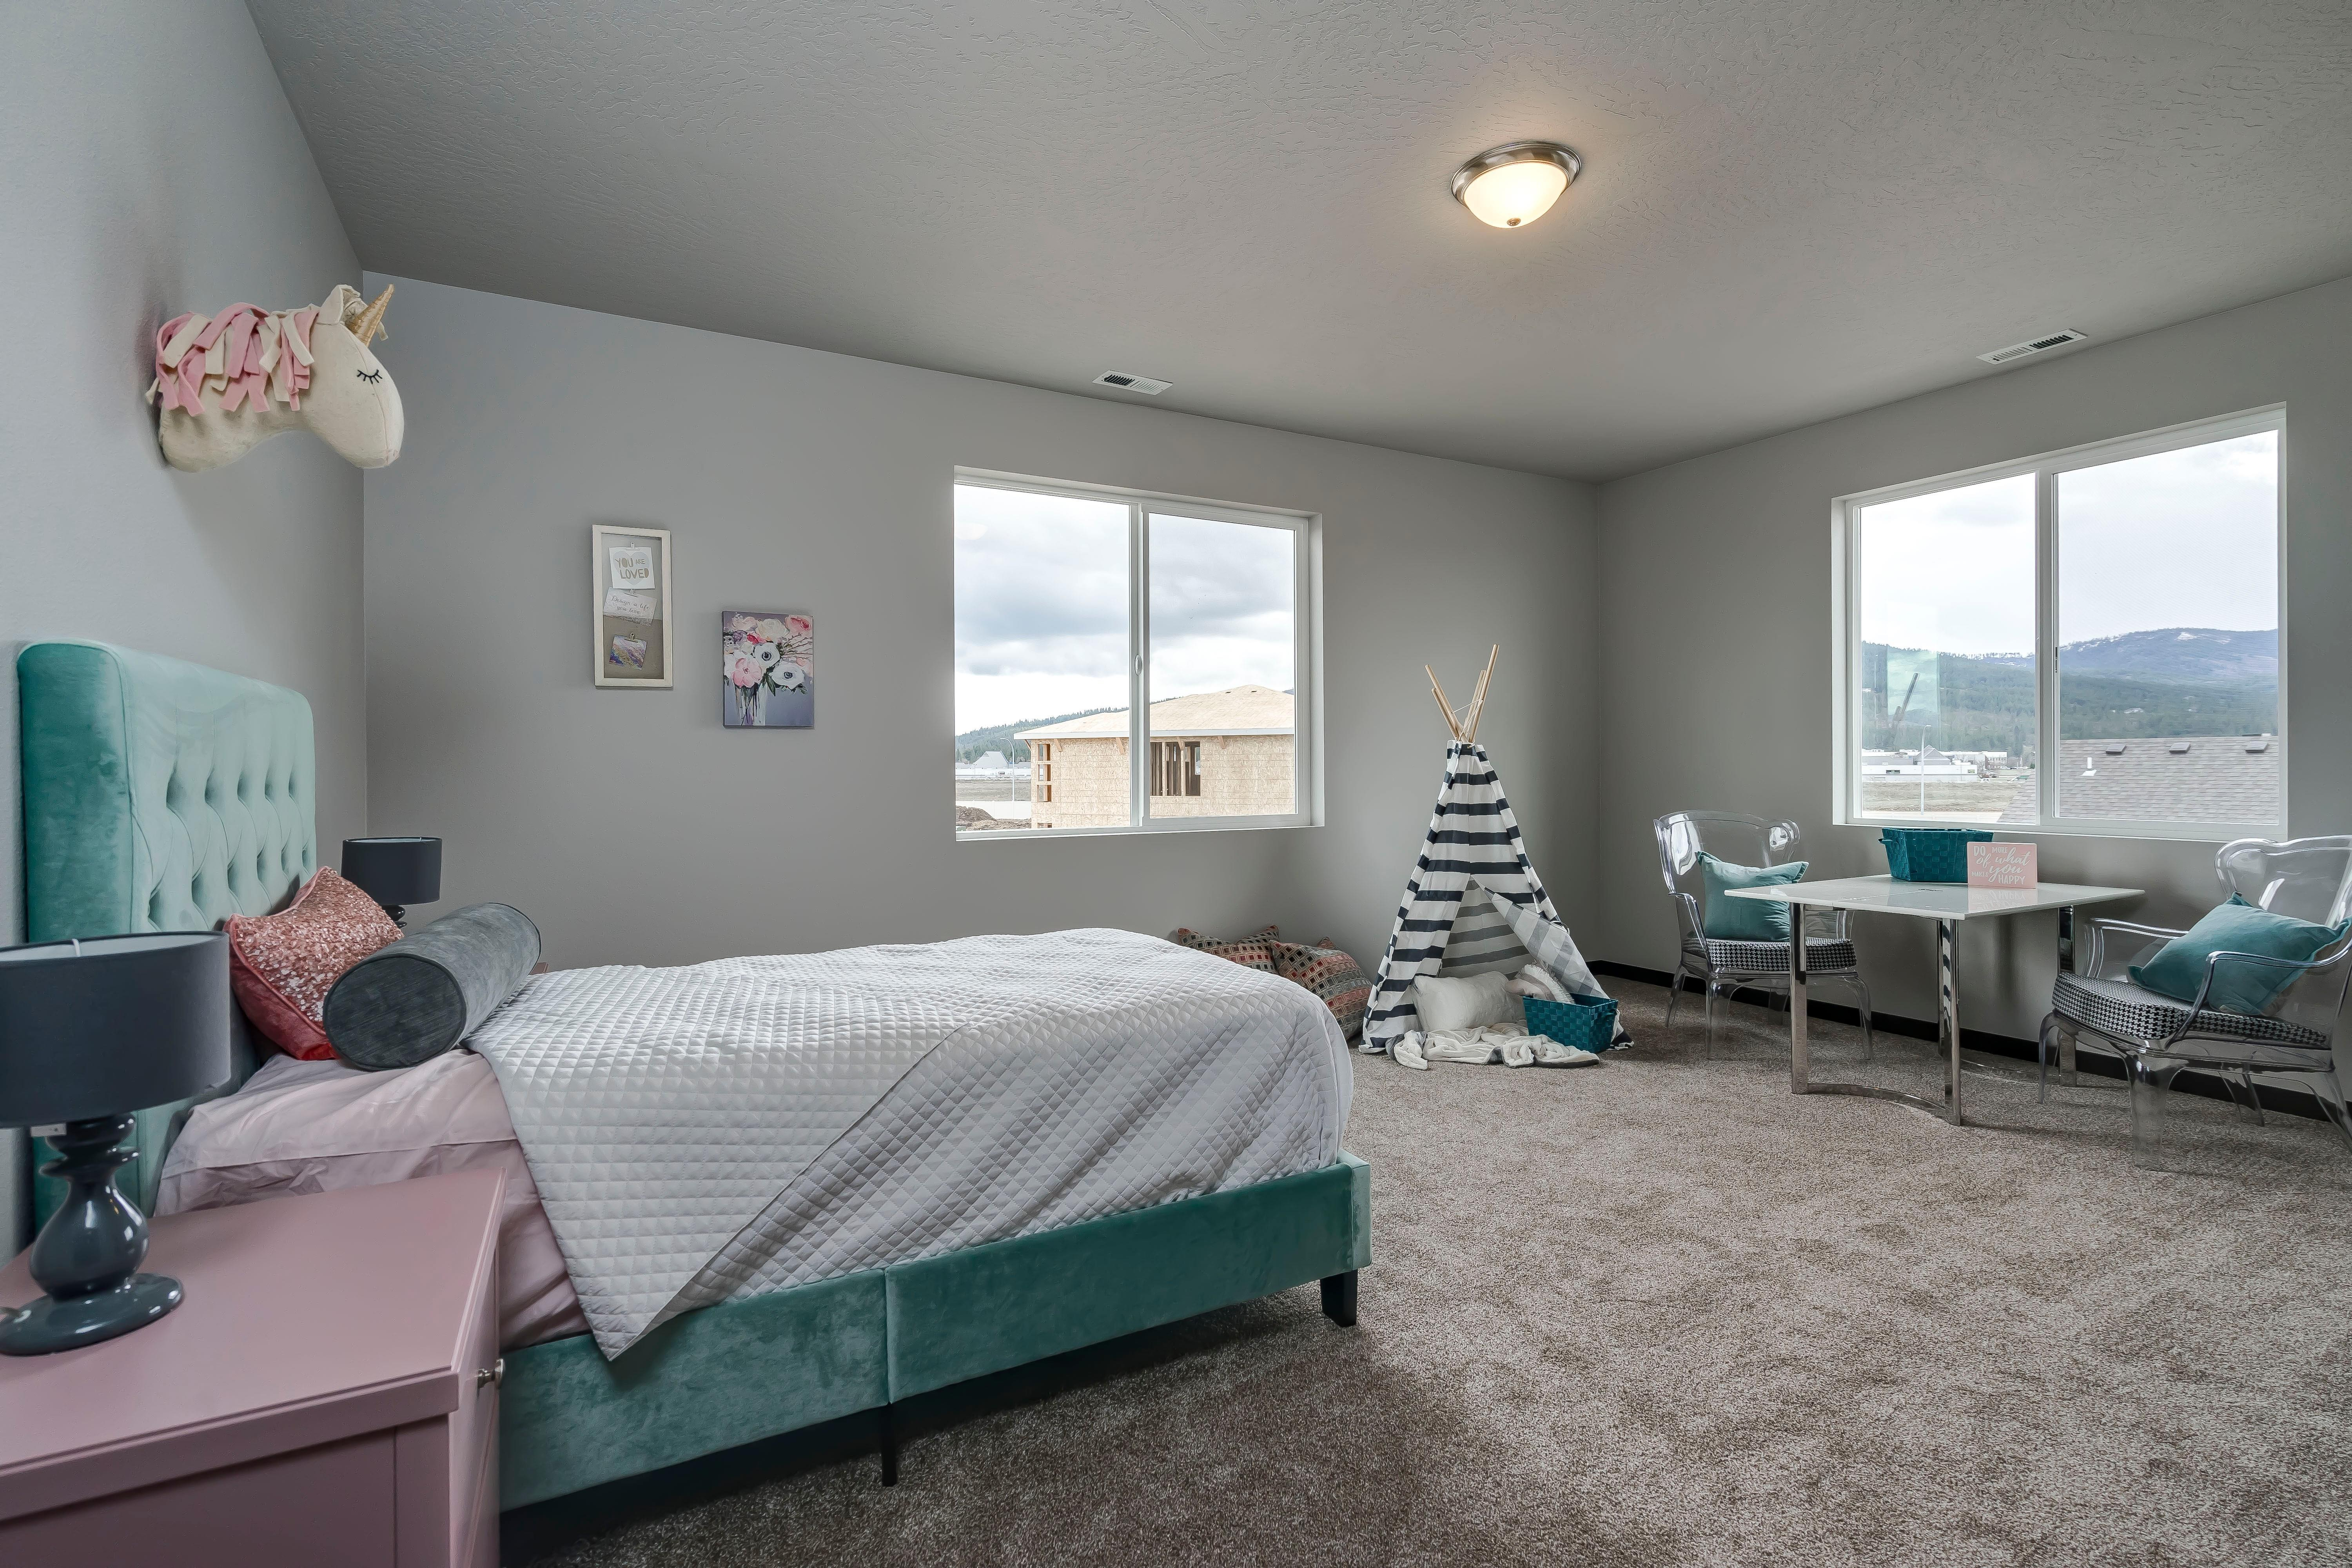 Bedroom featured in the Sawtooth Prairie By Painted Rock Homes in Spokane-Couer d Alene, ID